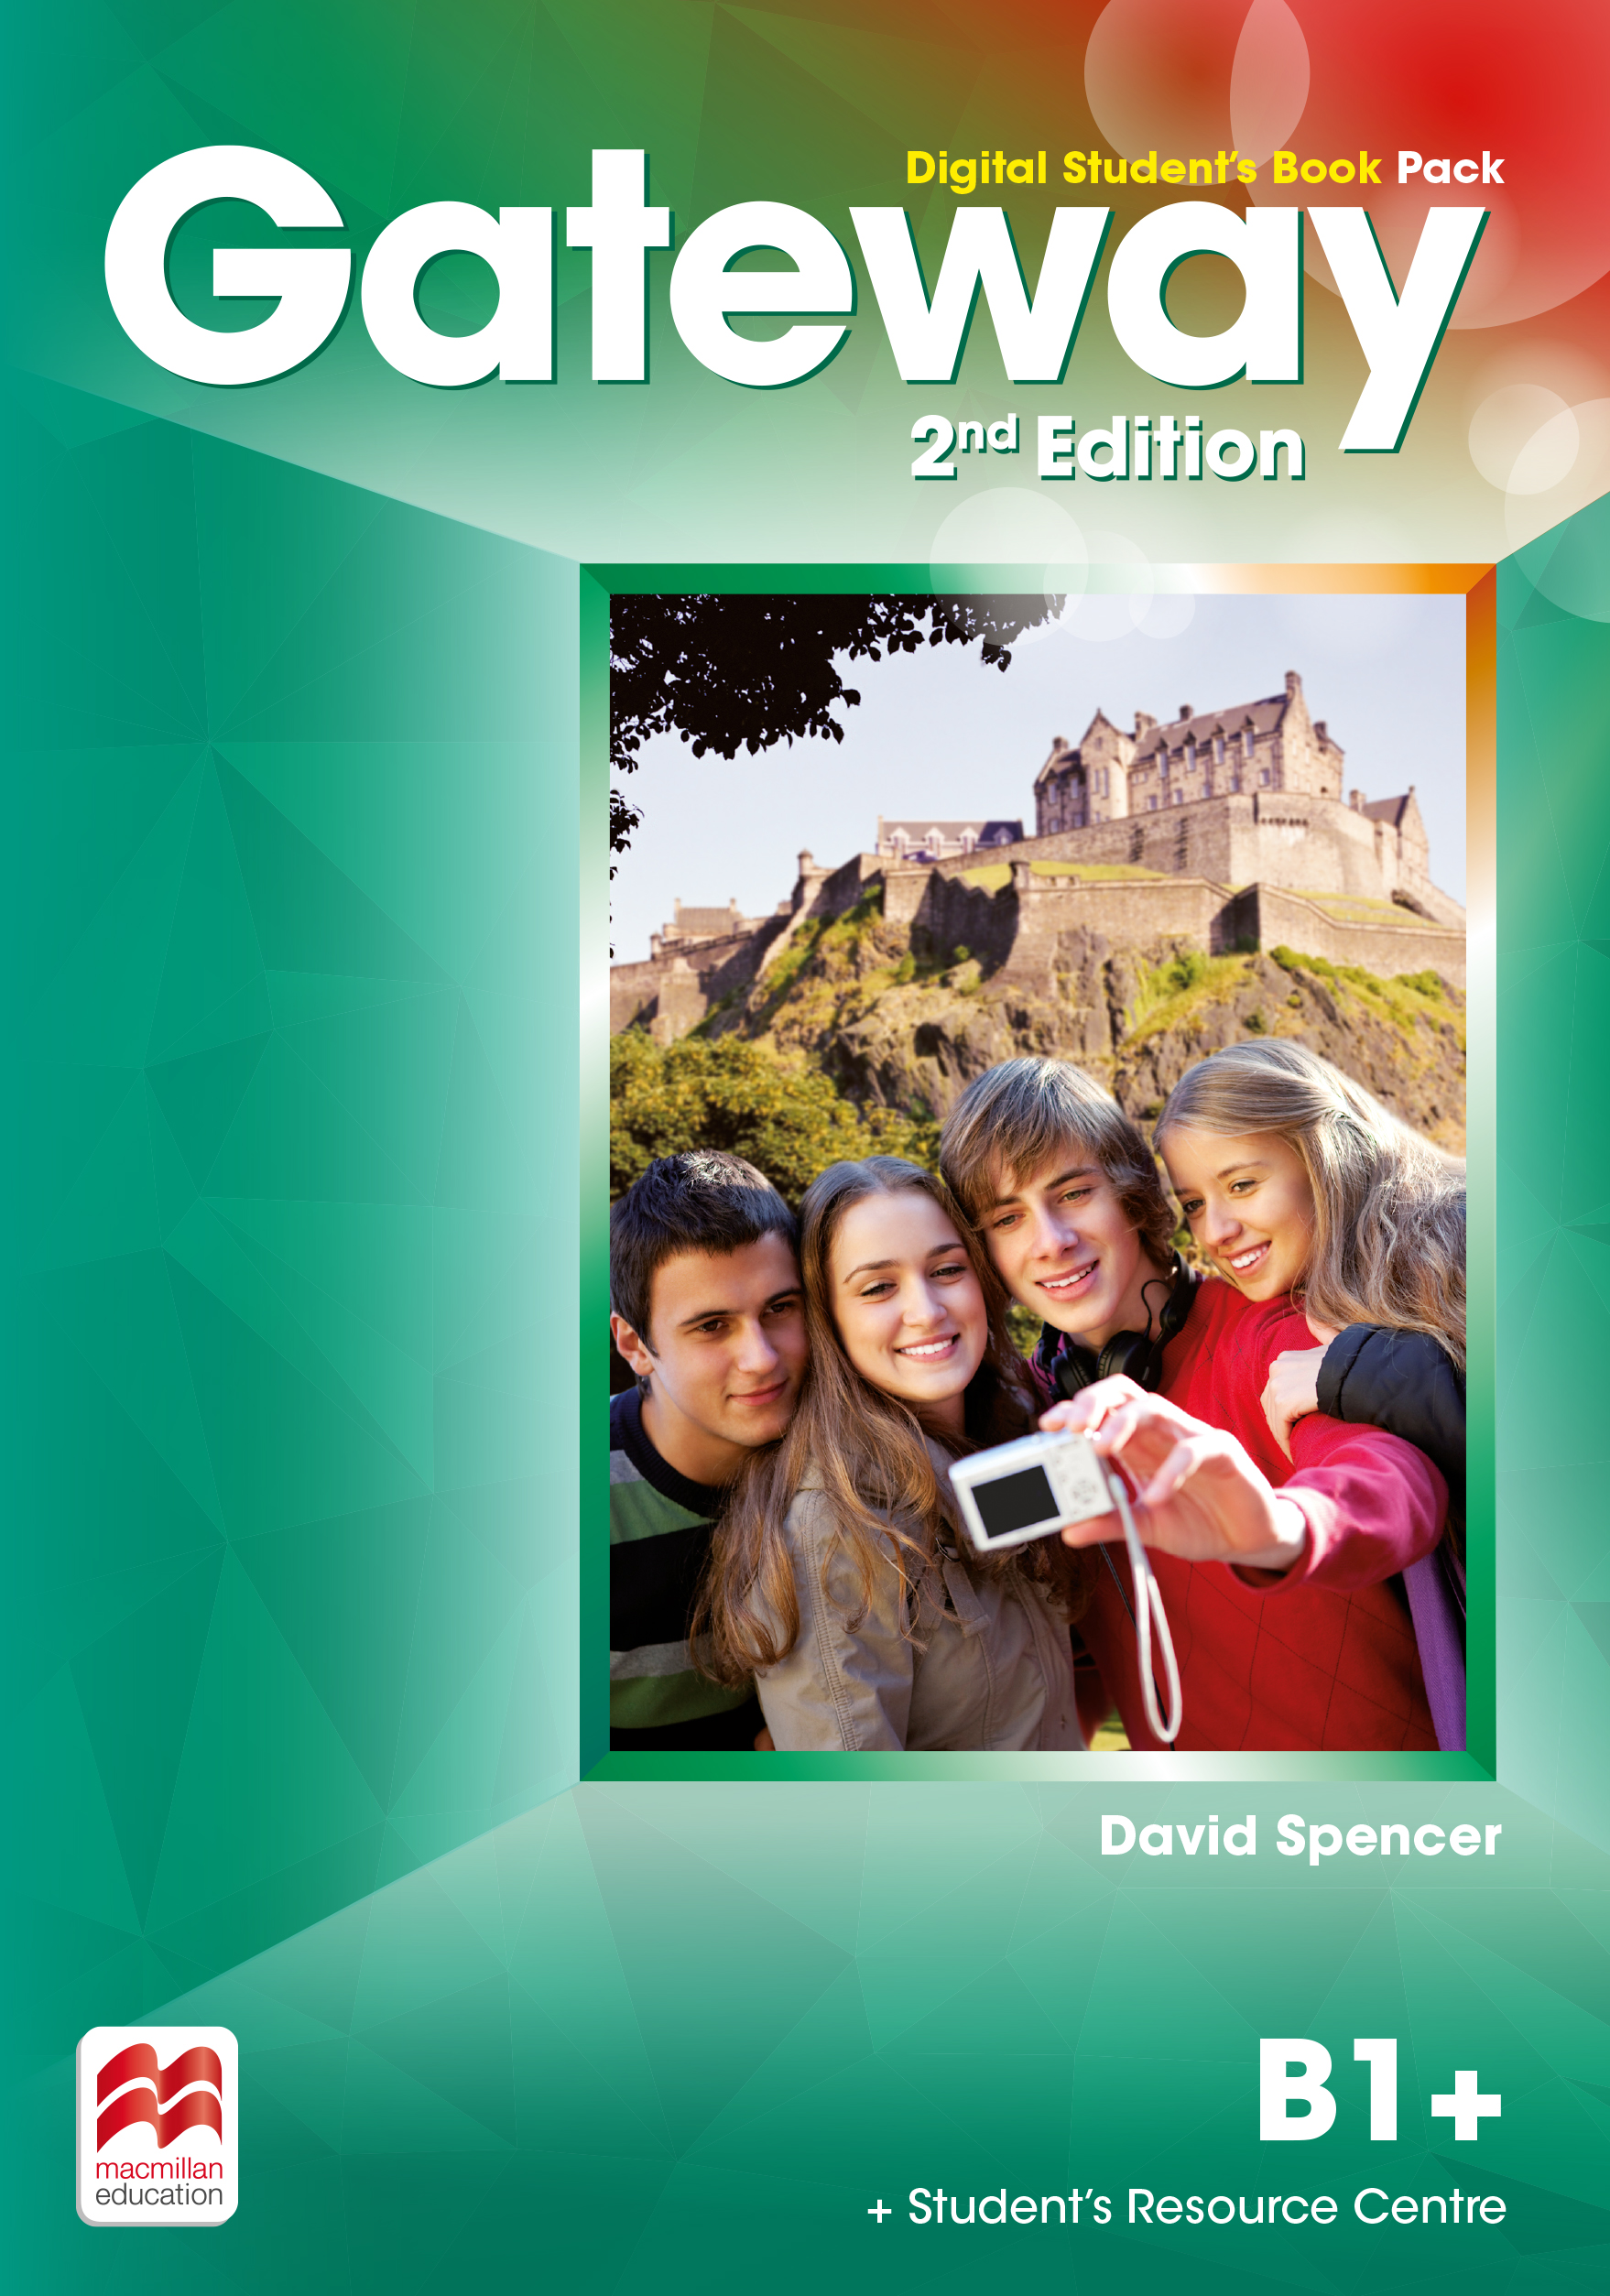 Gateway 2nd Edition B1+ Digital Student